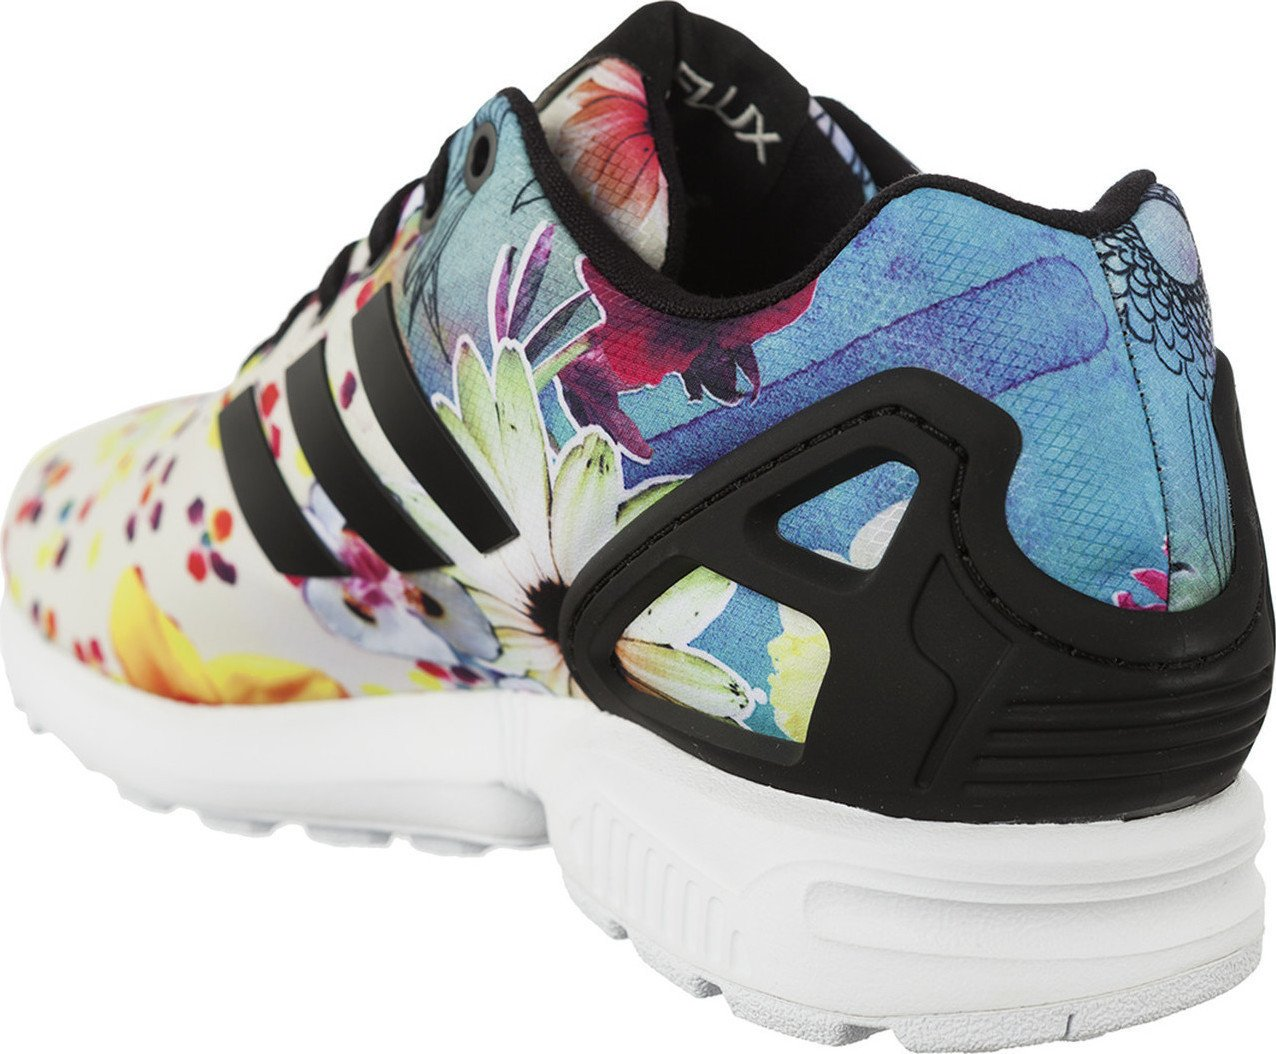 Zx Flux Floral | Adidas Zx Flux Champs | Red Zx Flux